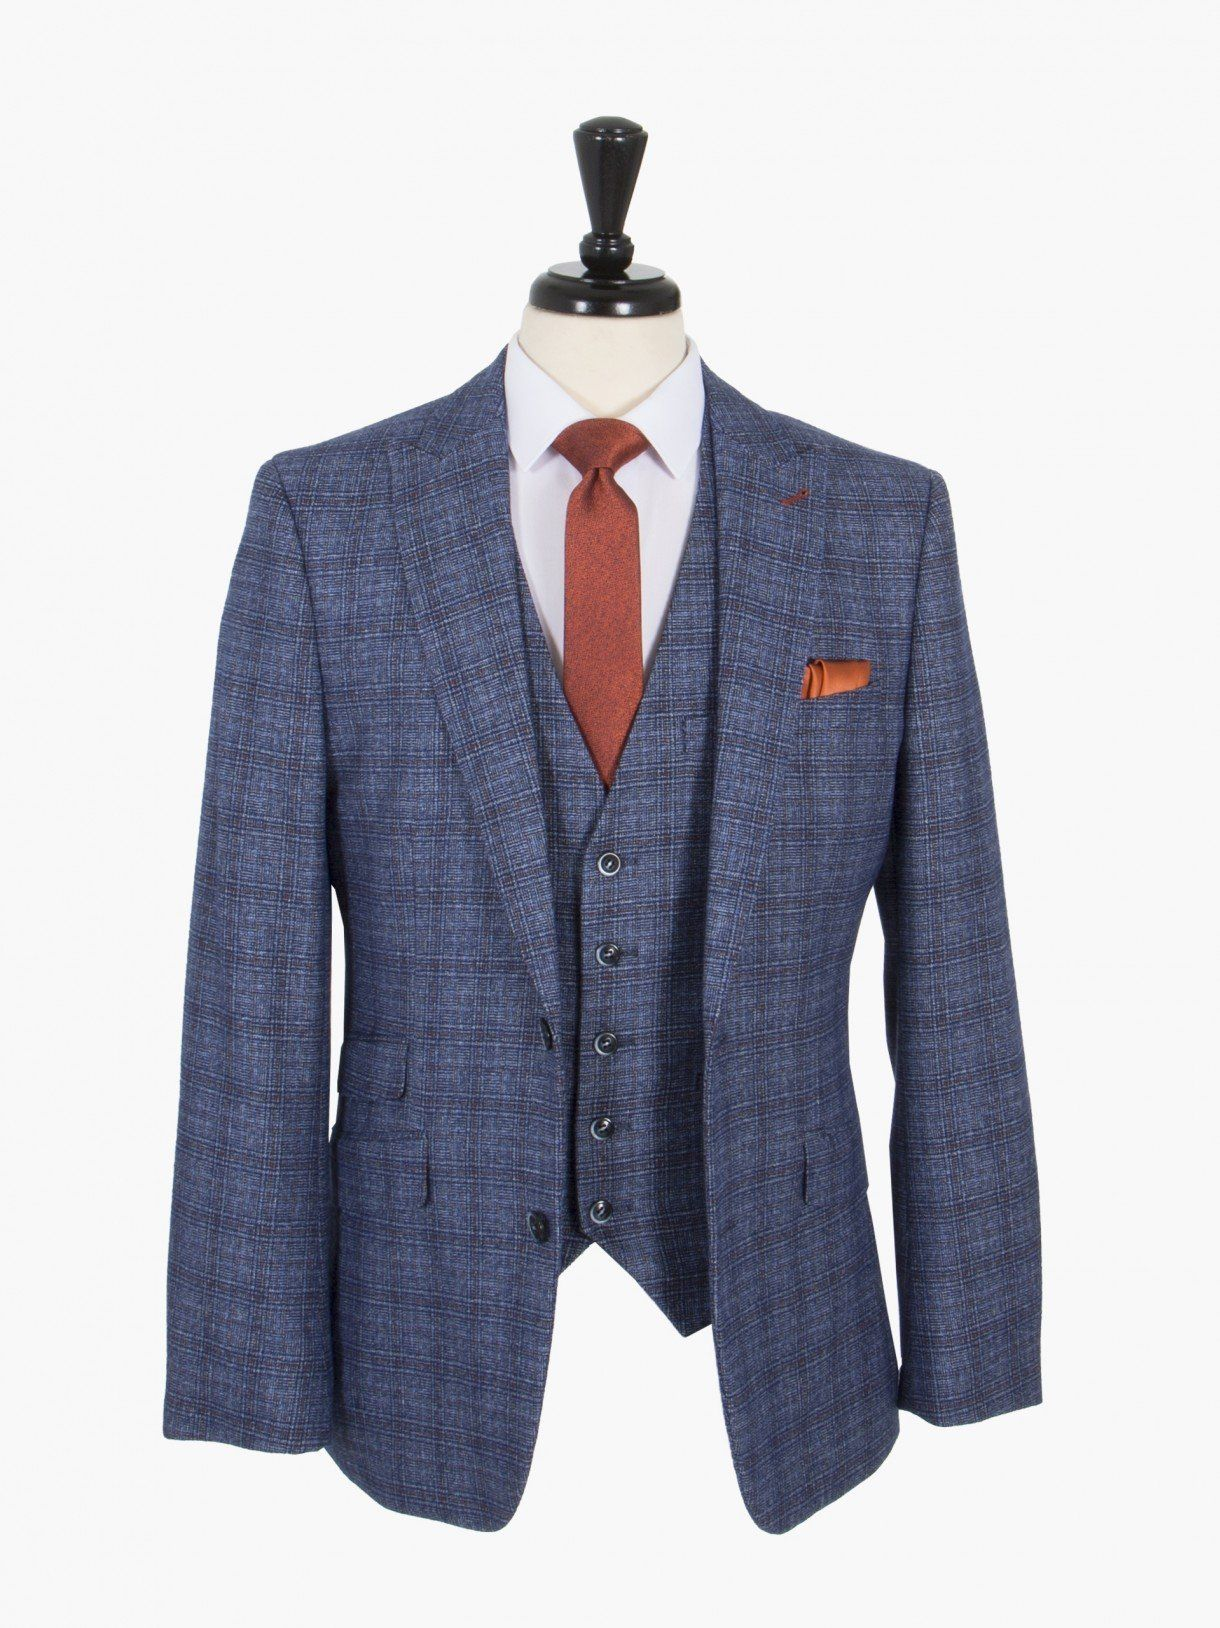 9aa5a41974abcf OneSix5ive Luxury Blue Check Three Piece Slim Fit Suit | Suits ...